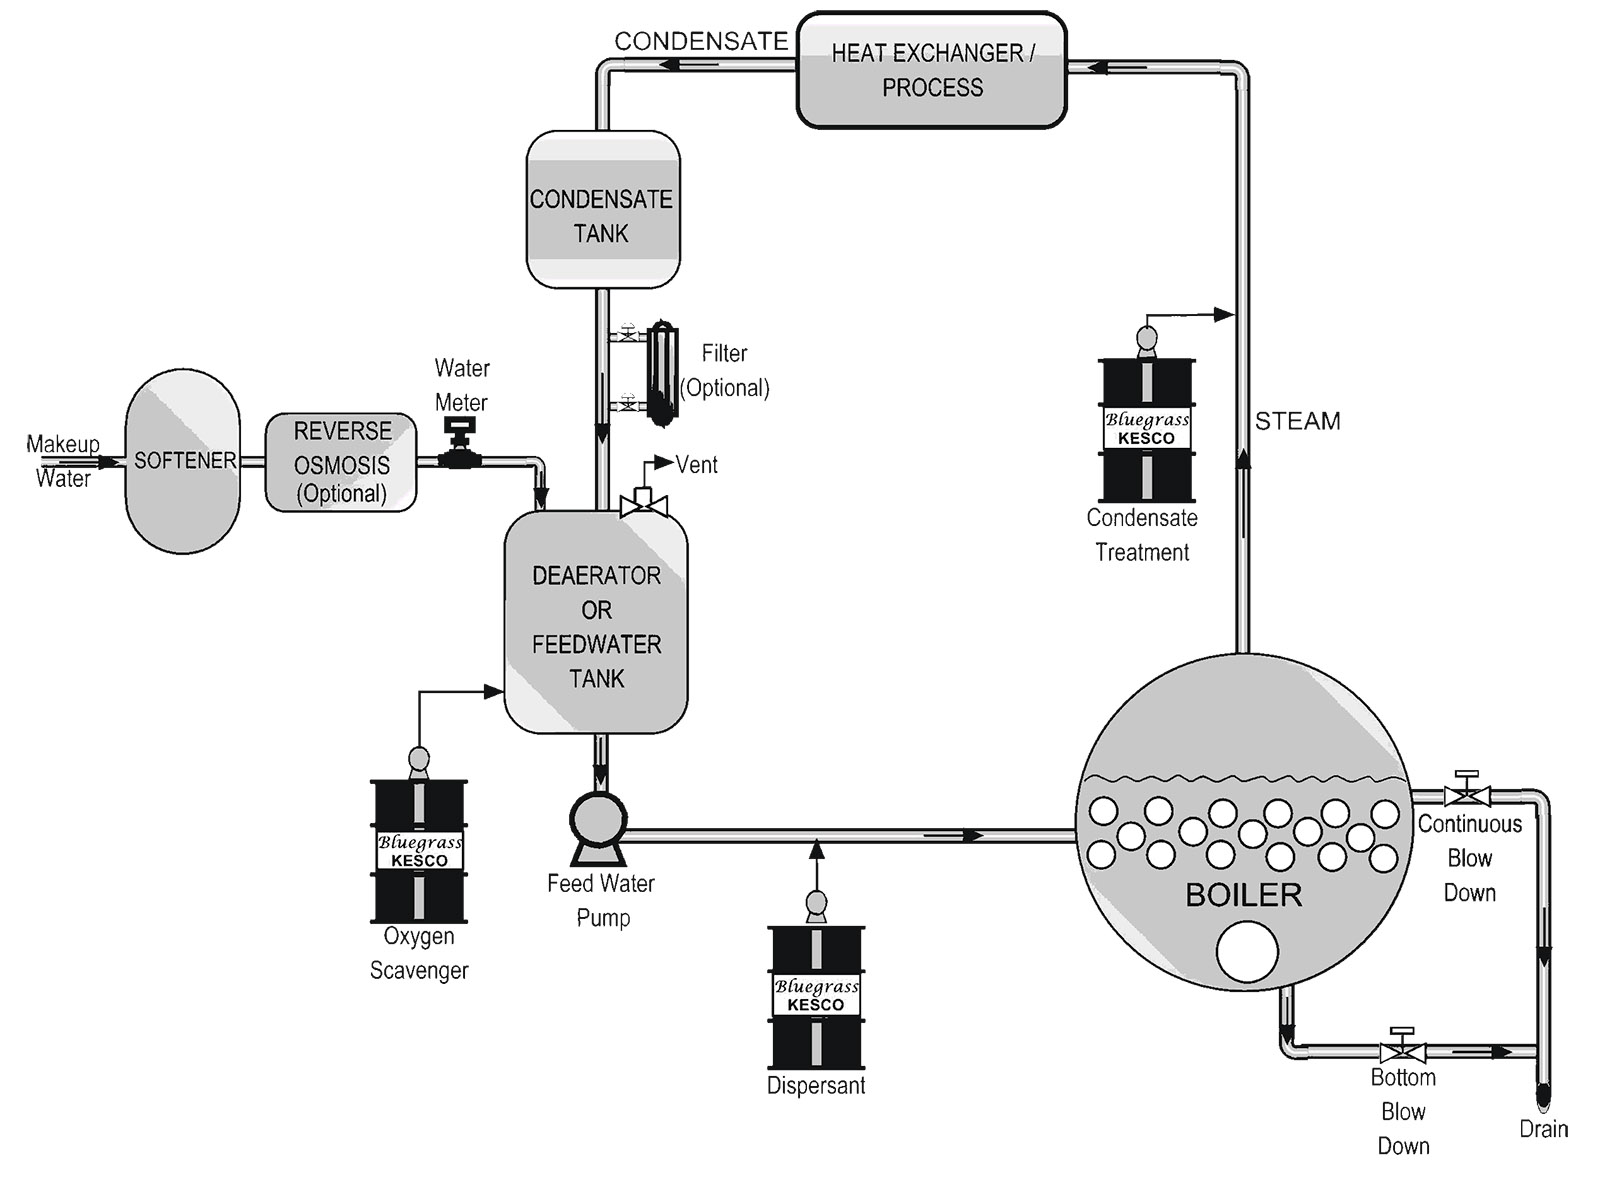 Typical Boiler Systems